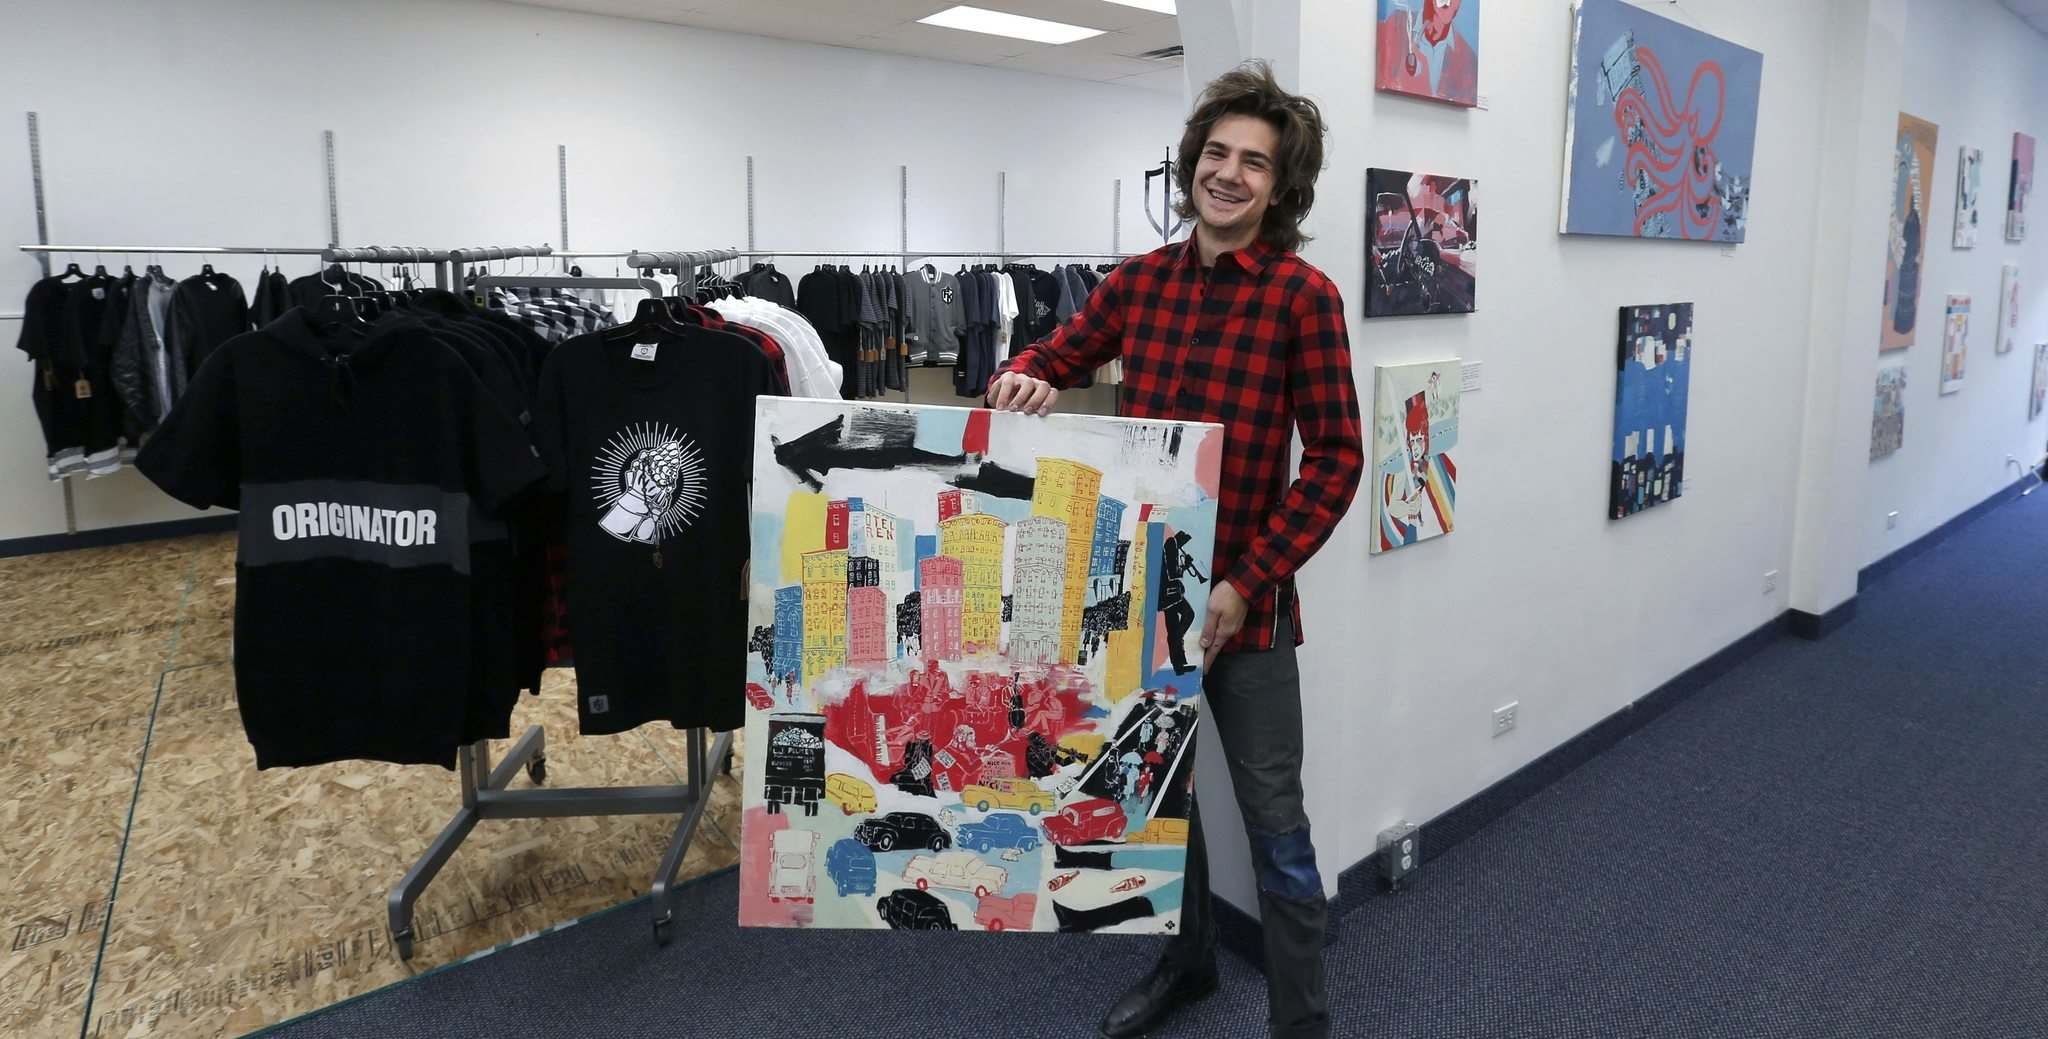 WAYNE GLOWACKI / WINNIPEG FREE PRESS</p><p>Artist Josiah Koppanyi owner of Josiah Galleries with his paintings shares the space with Eric Olek's Friday Knights Clothing & Accessories at left.</p>